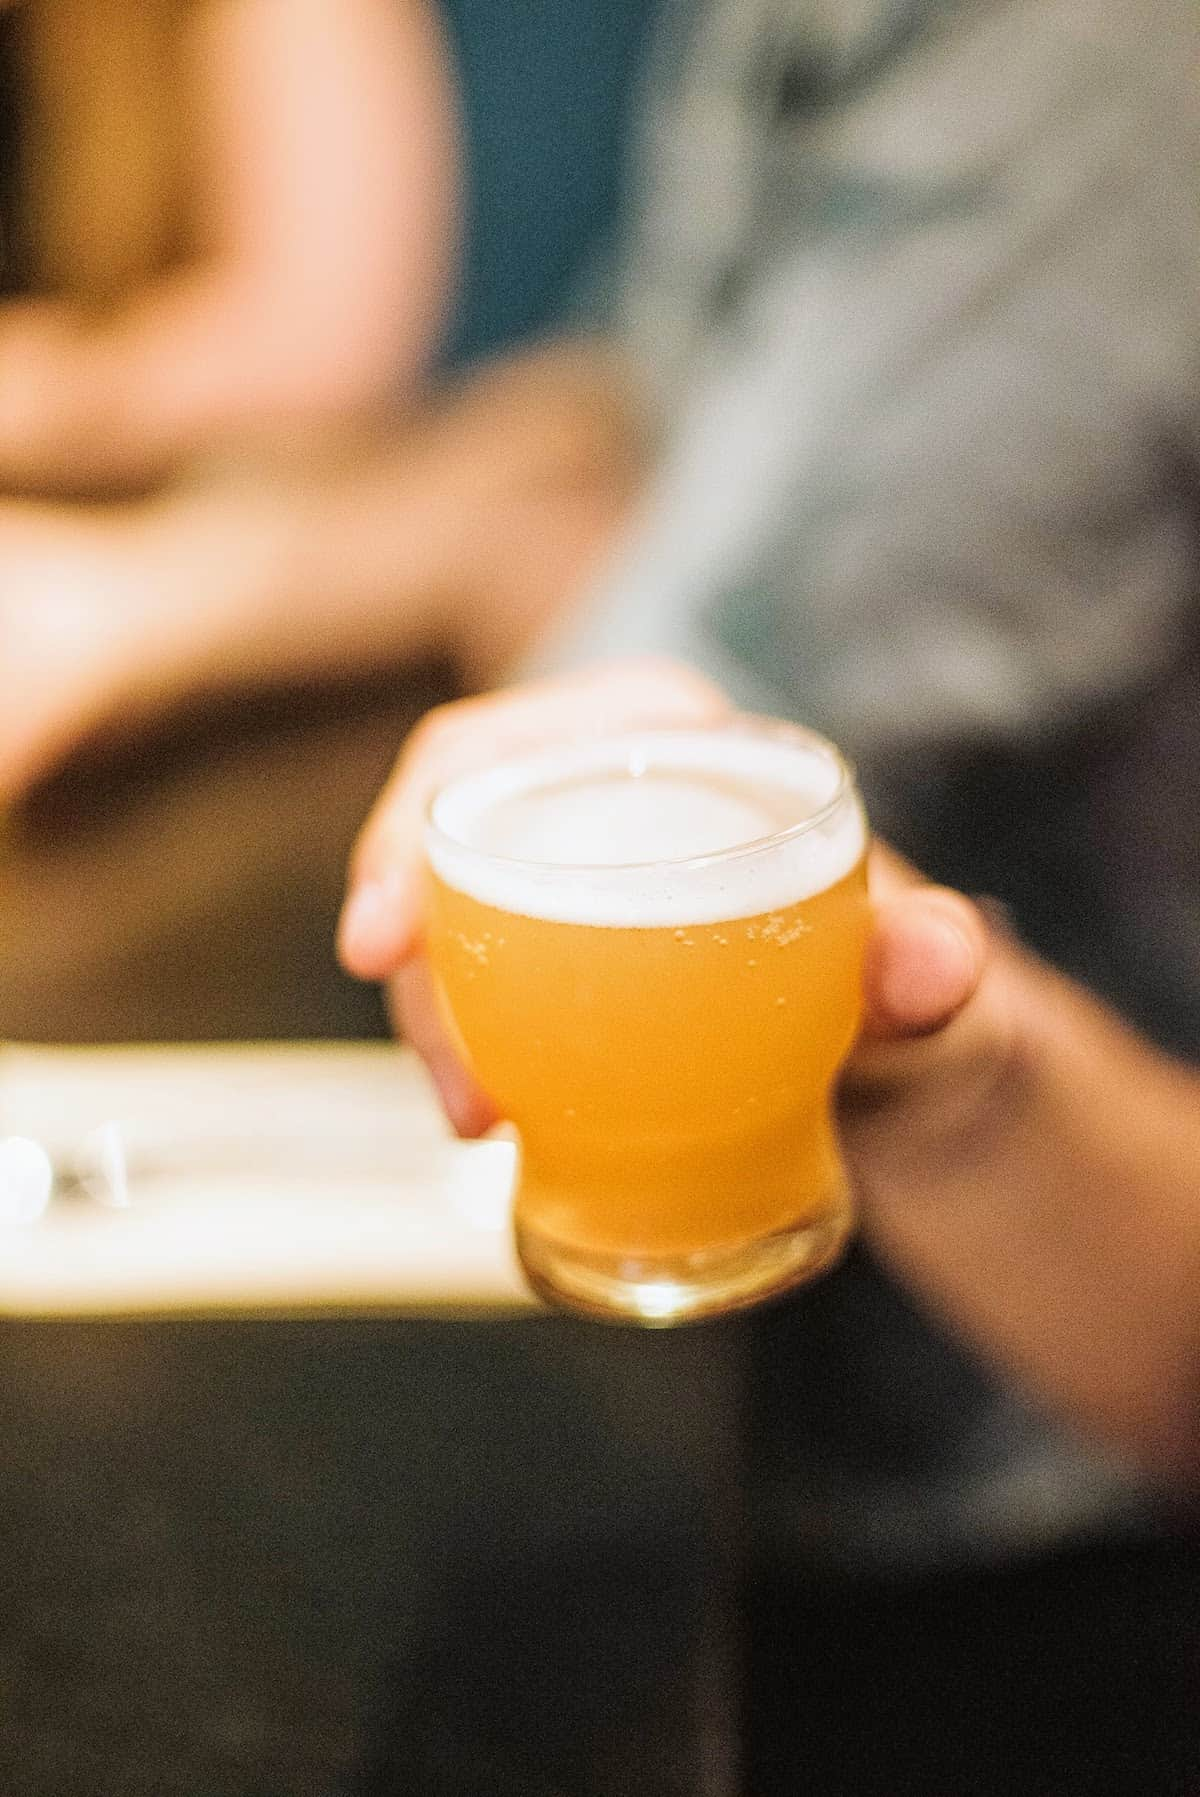 Close up of a person's hand holding a small draft beer